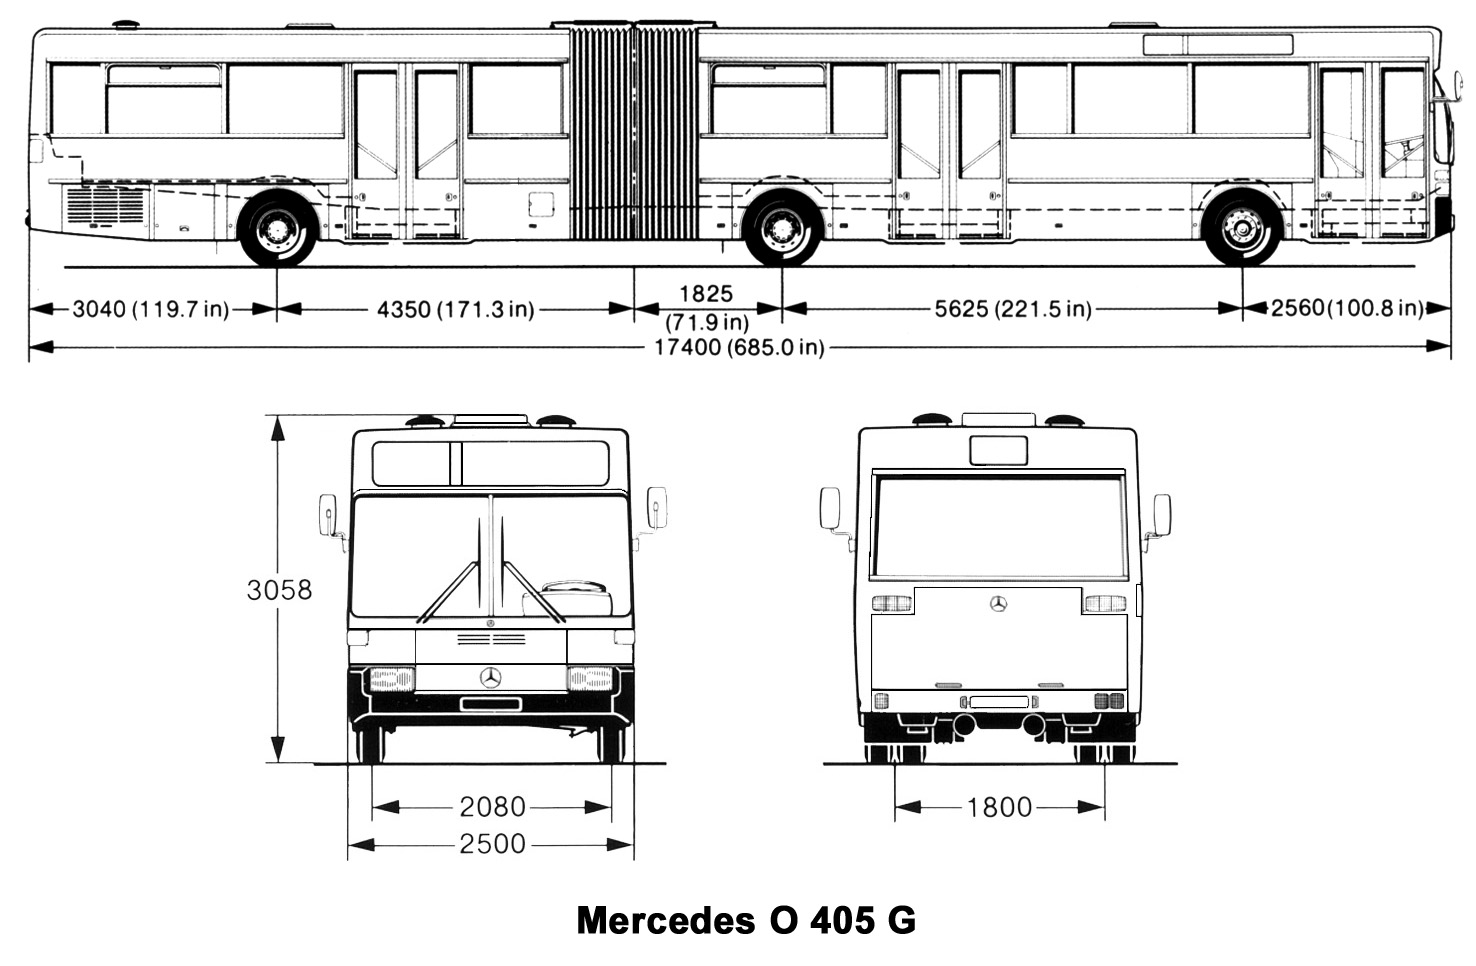 Mercedes-Benz O405 G blueprint